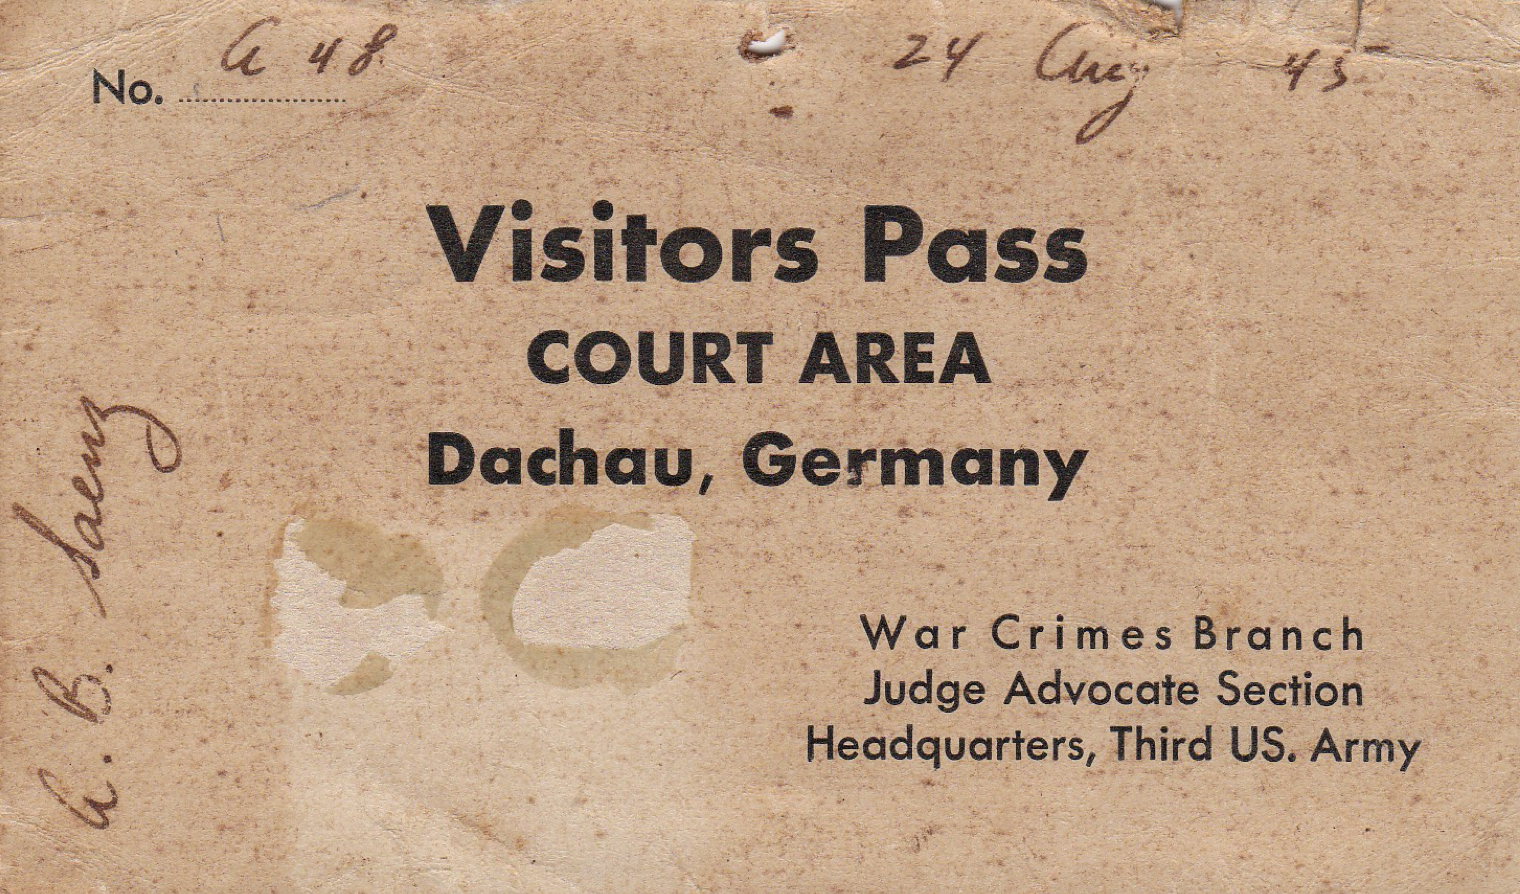 Visitors Pass Dachau Germany 24 Aug 1945